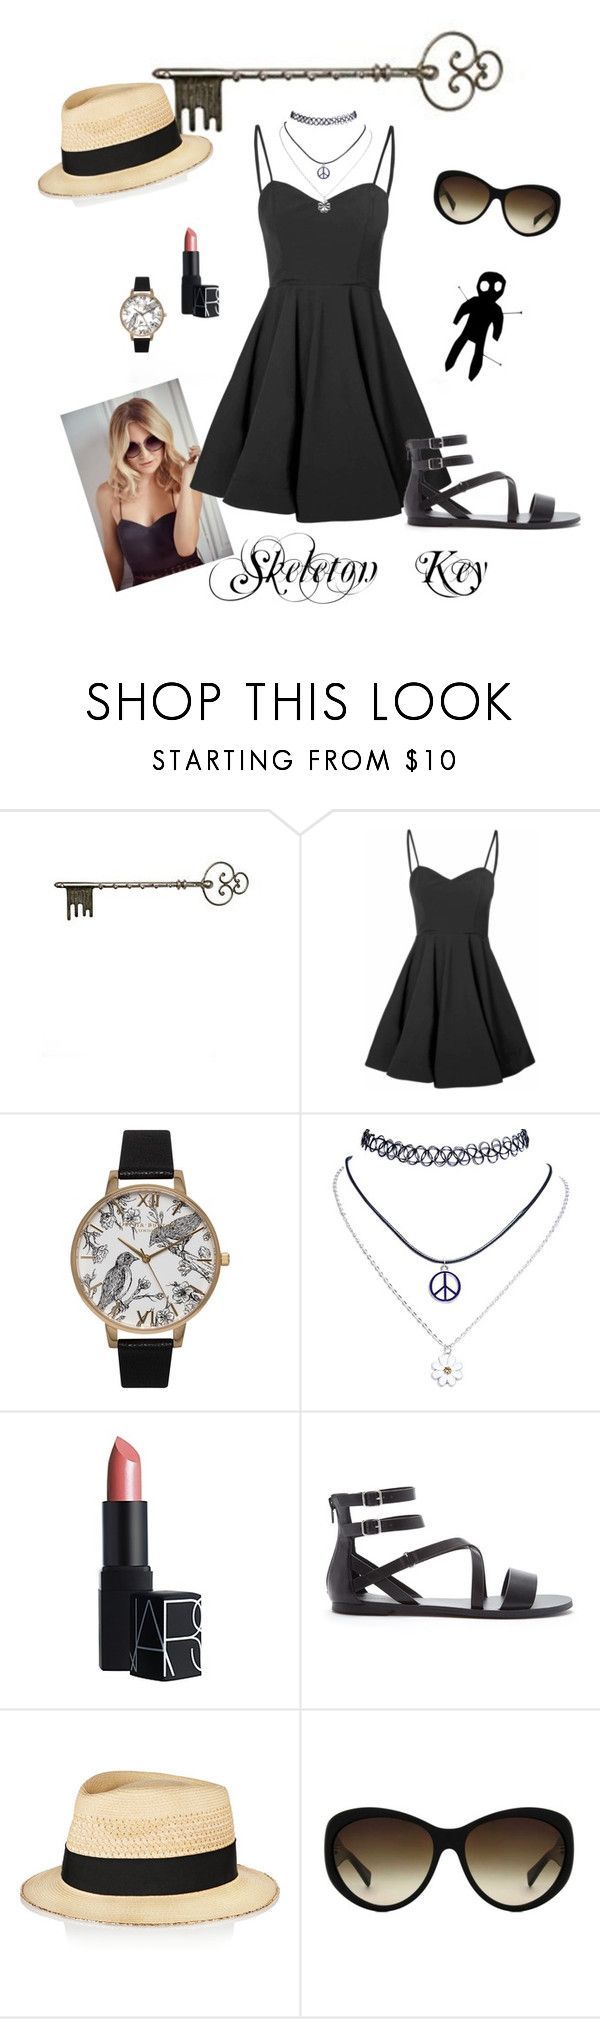 """Skeleton Key"" by polka-dot-pearl on Polyvore featuring Jimmy Choo, Glamorous, Olivia Burton, NARS Cosmetics, Forever 21, Eugenia Kim, Michael Kors, women's clothing, women's fashion and women"